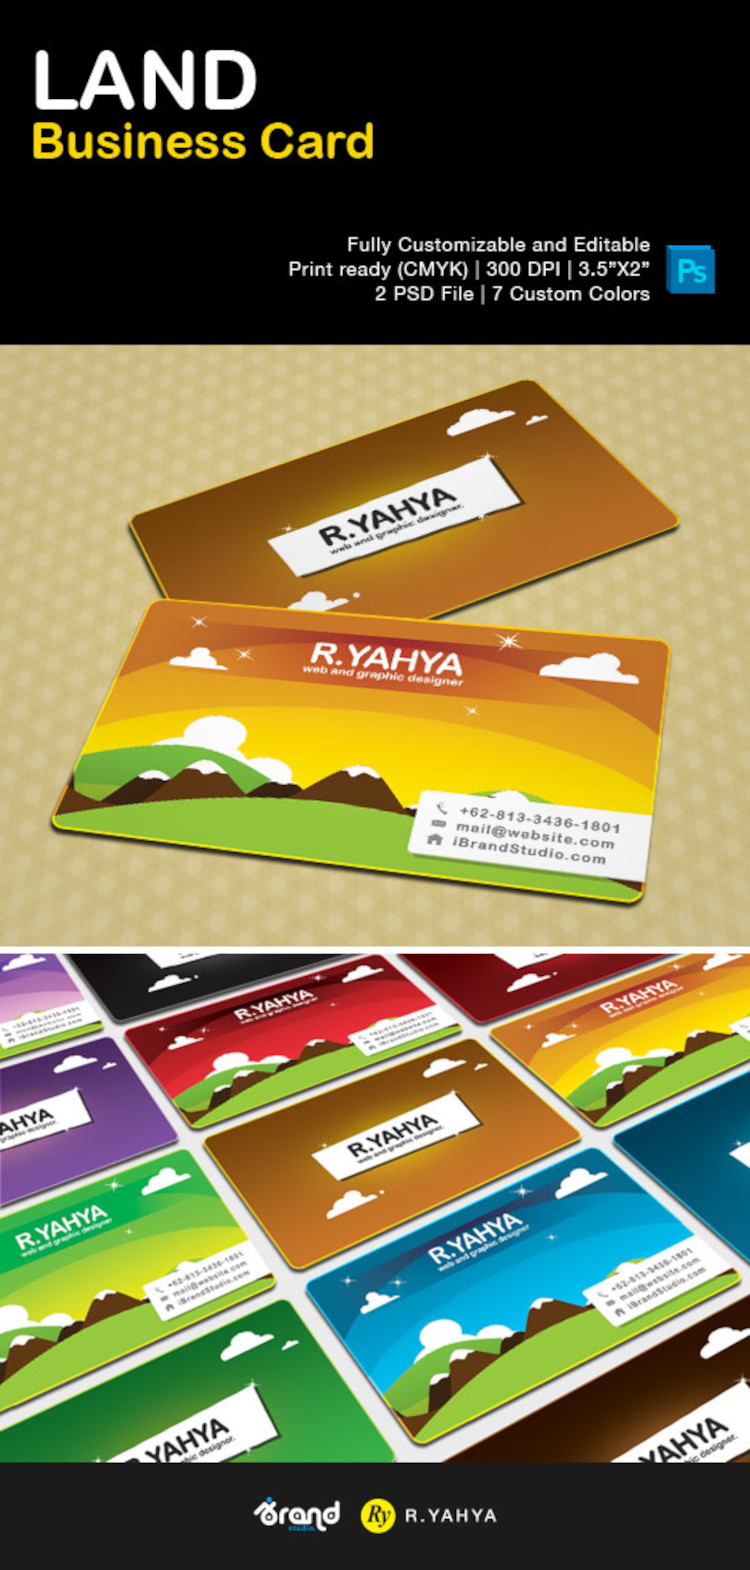 Free LAND Business Card Template (7 Colors)